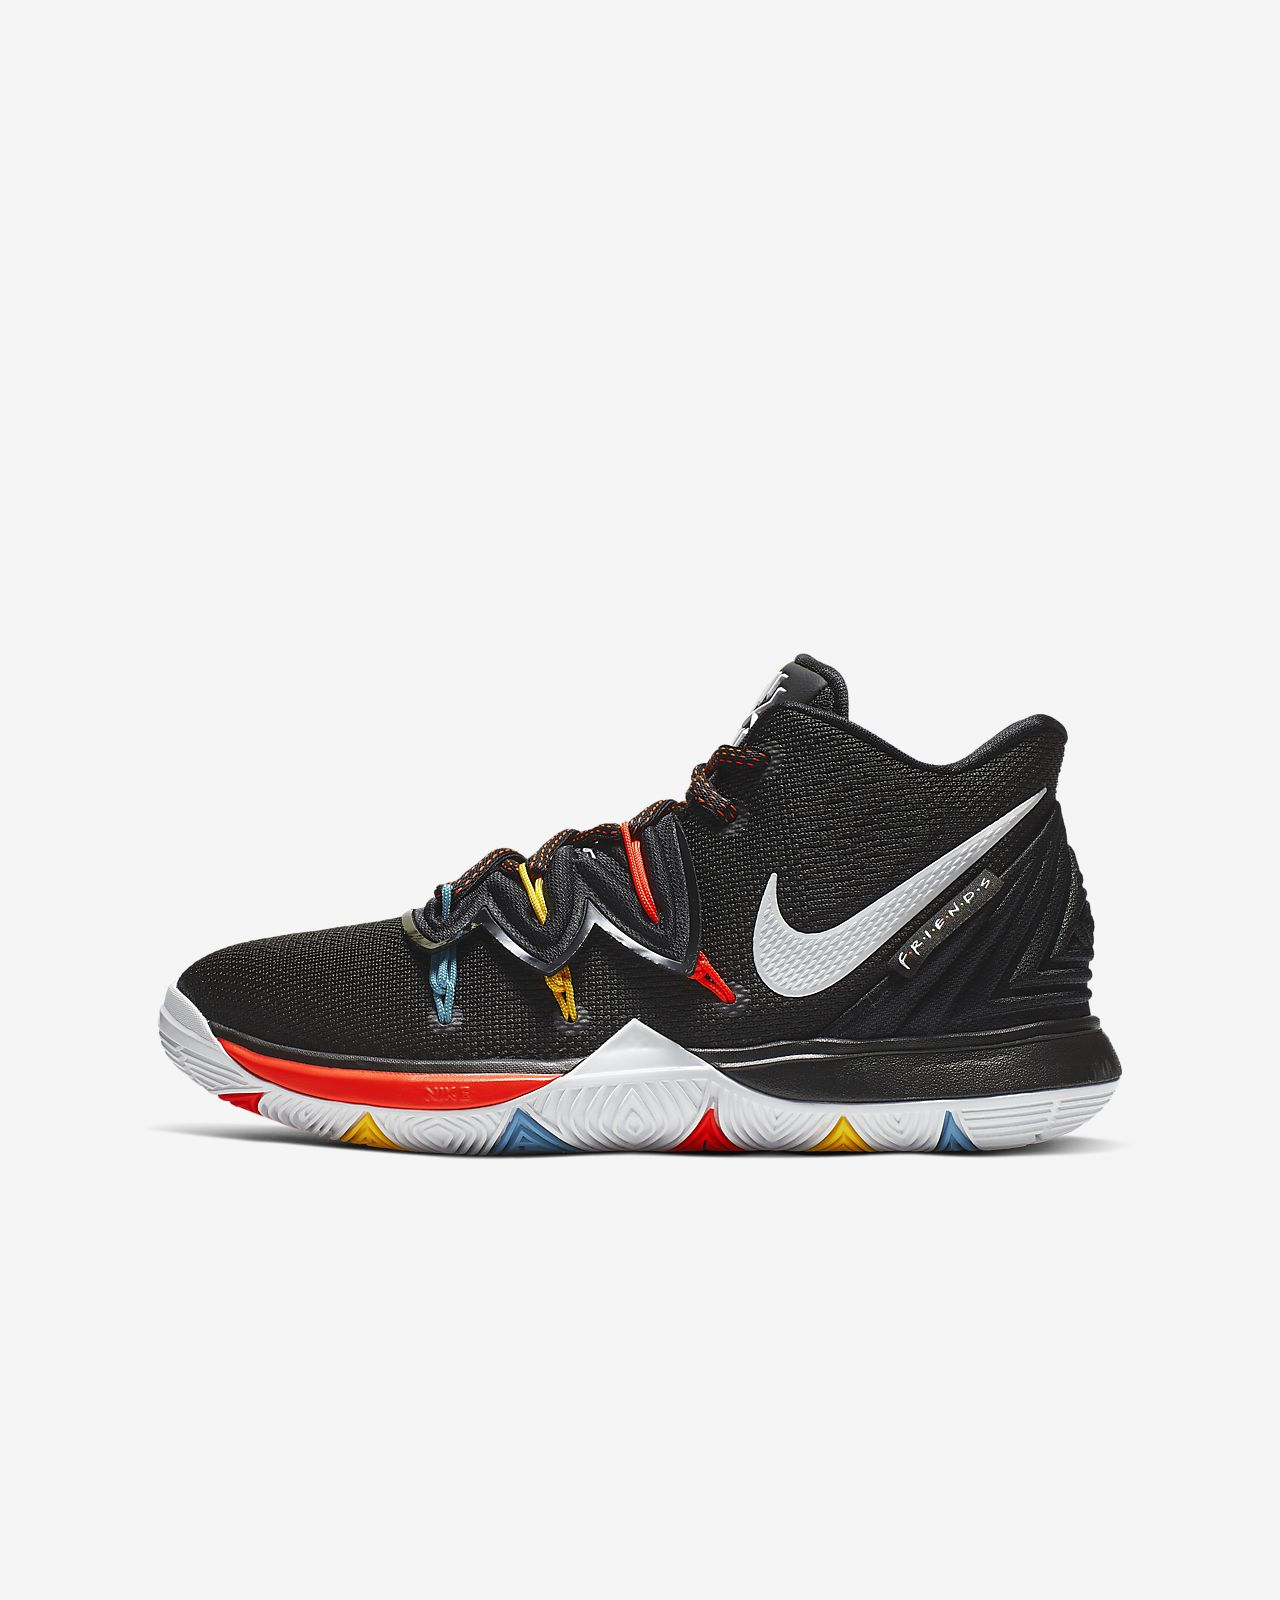 77ee6c5e613478 Kyrie 5 Big Kids  Shoe. Nike.com